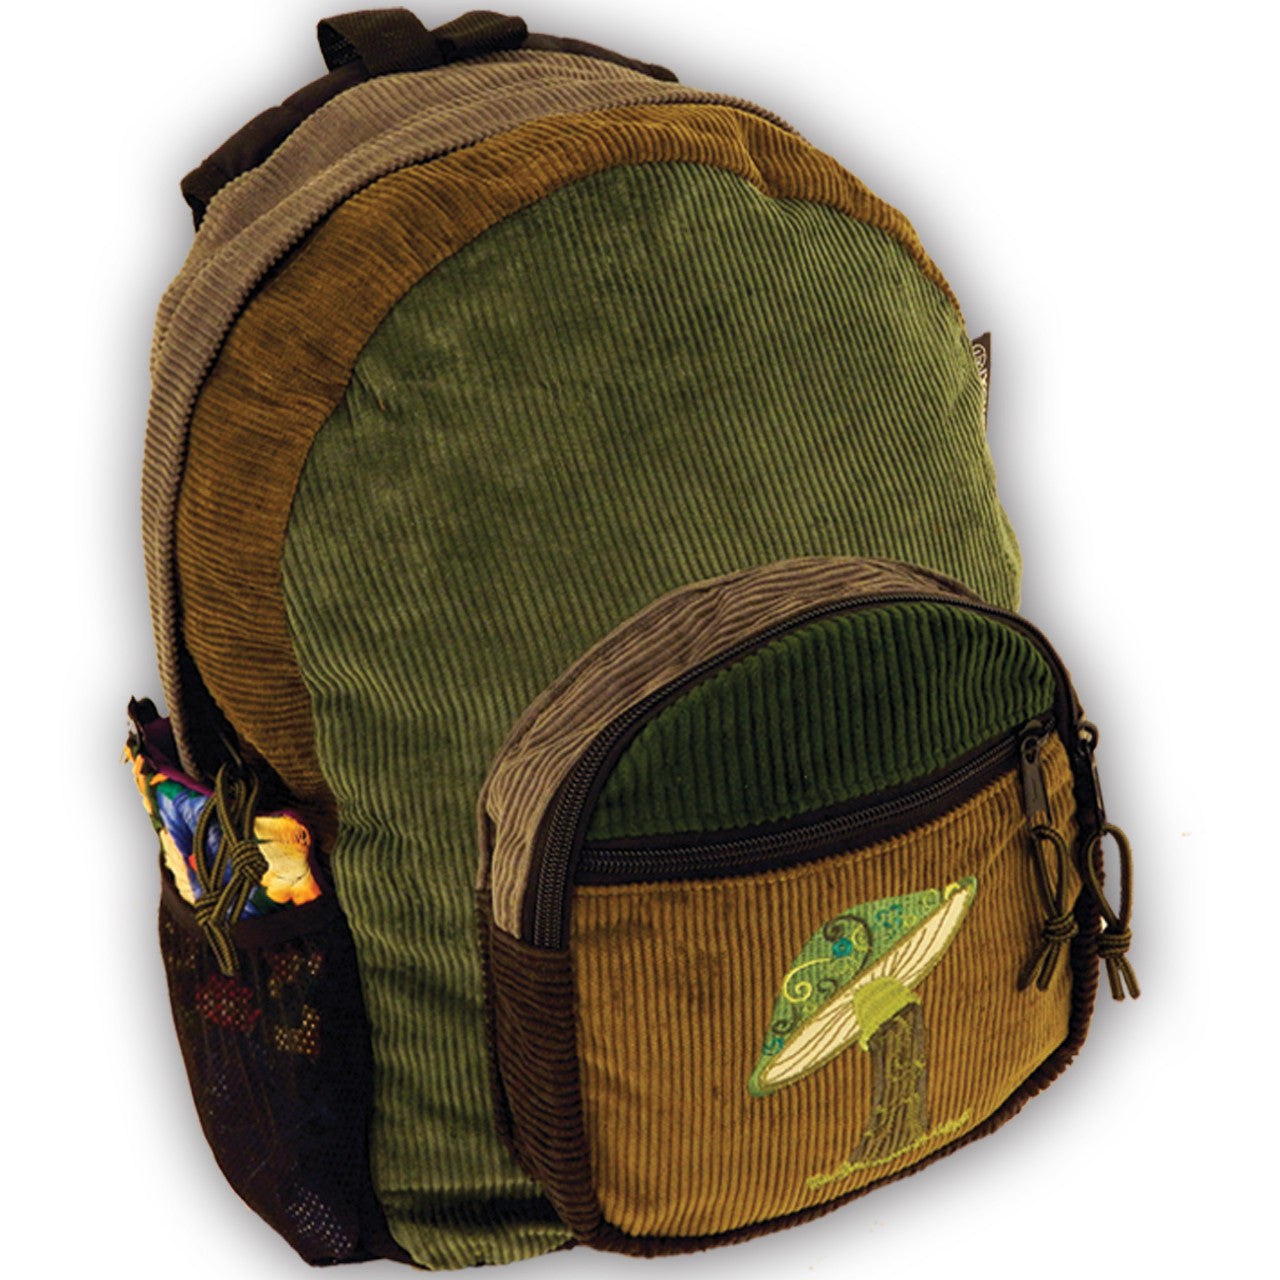 Corduroy patch backpack mushroom embroidery medum green